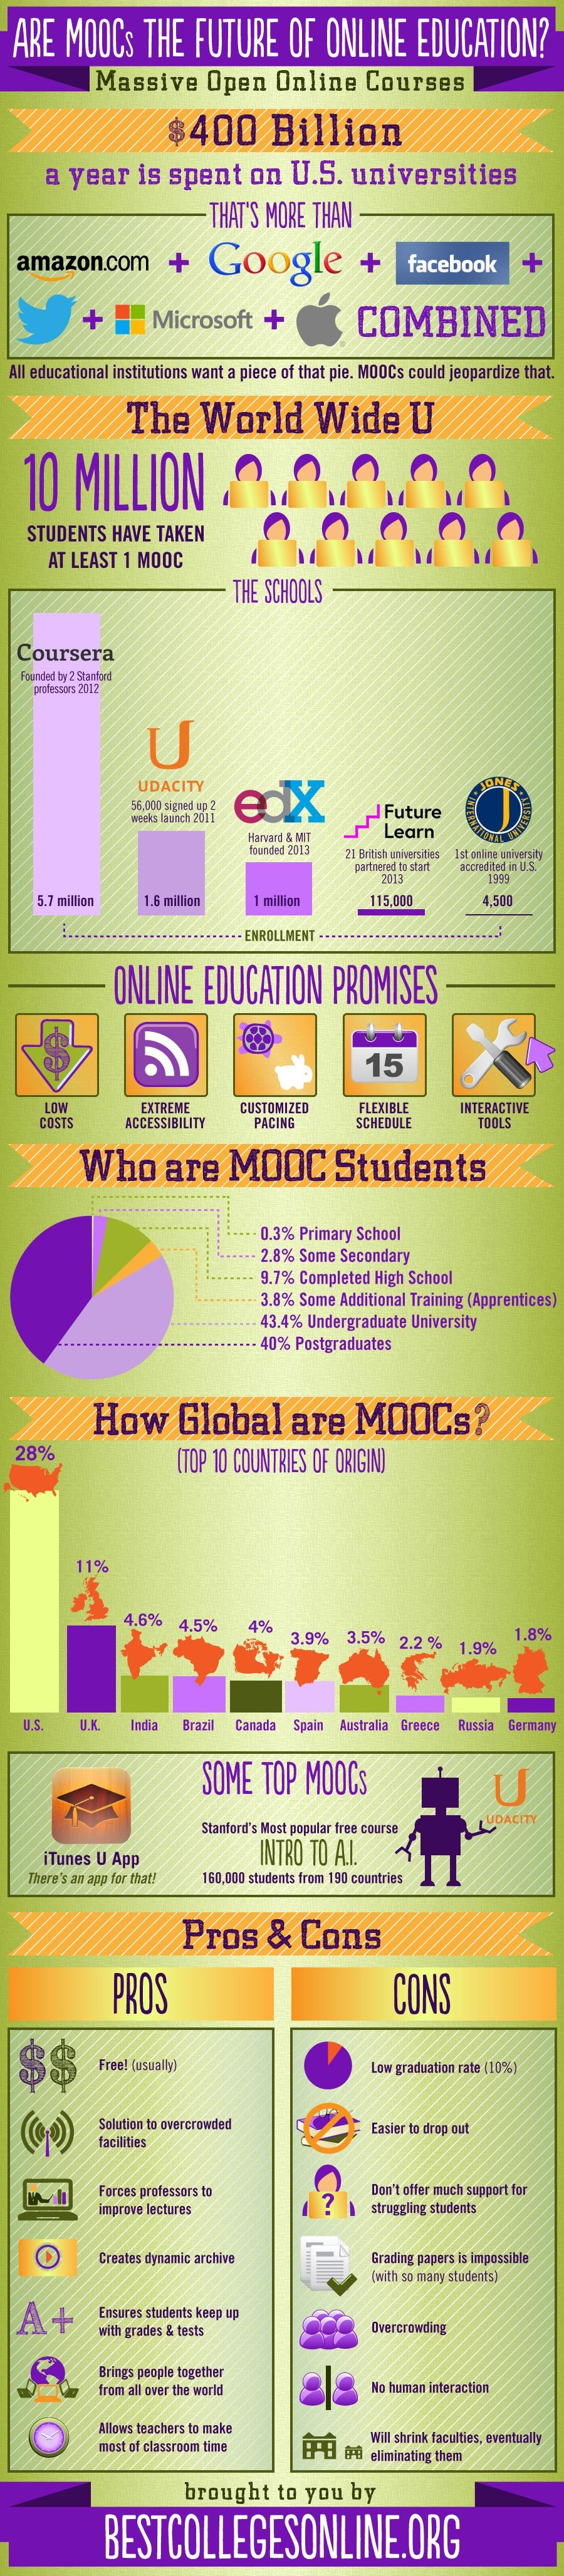 Are MOOCs the Future of Online Education